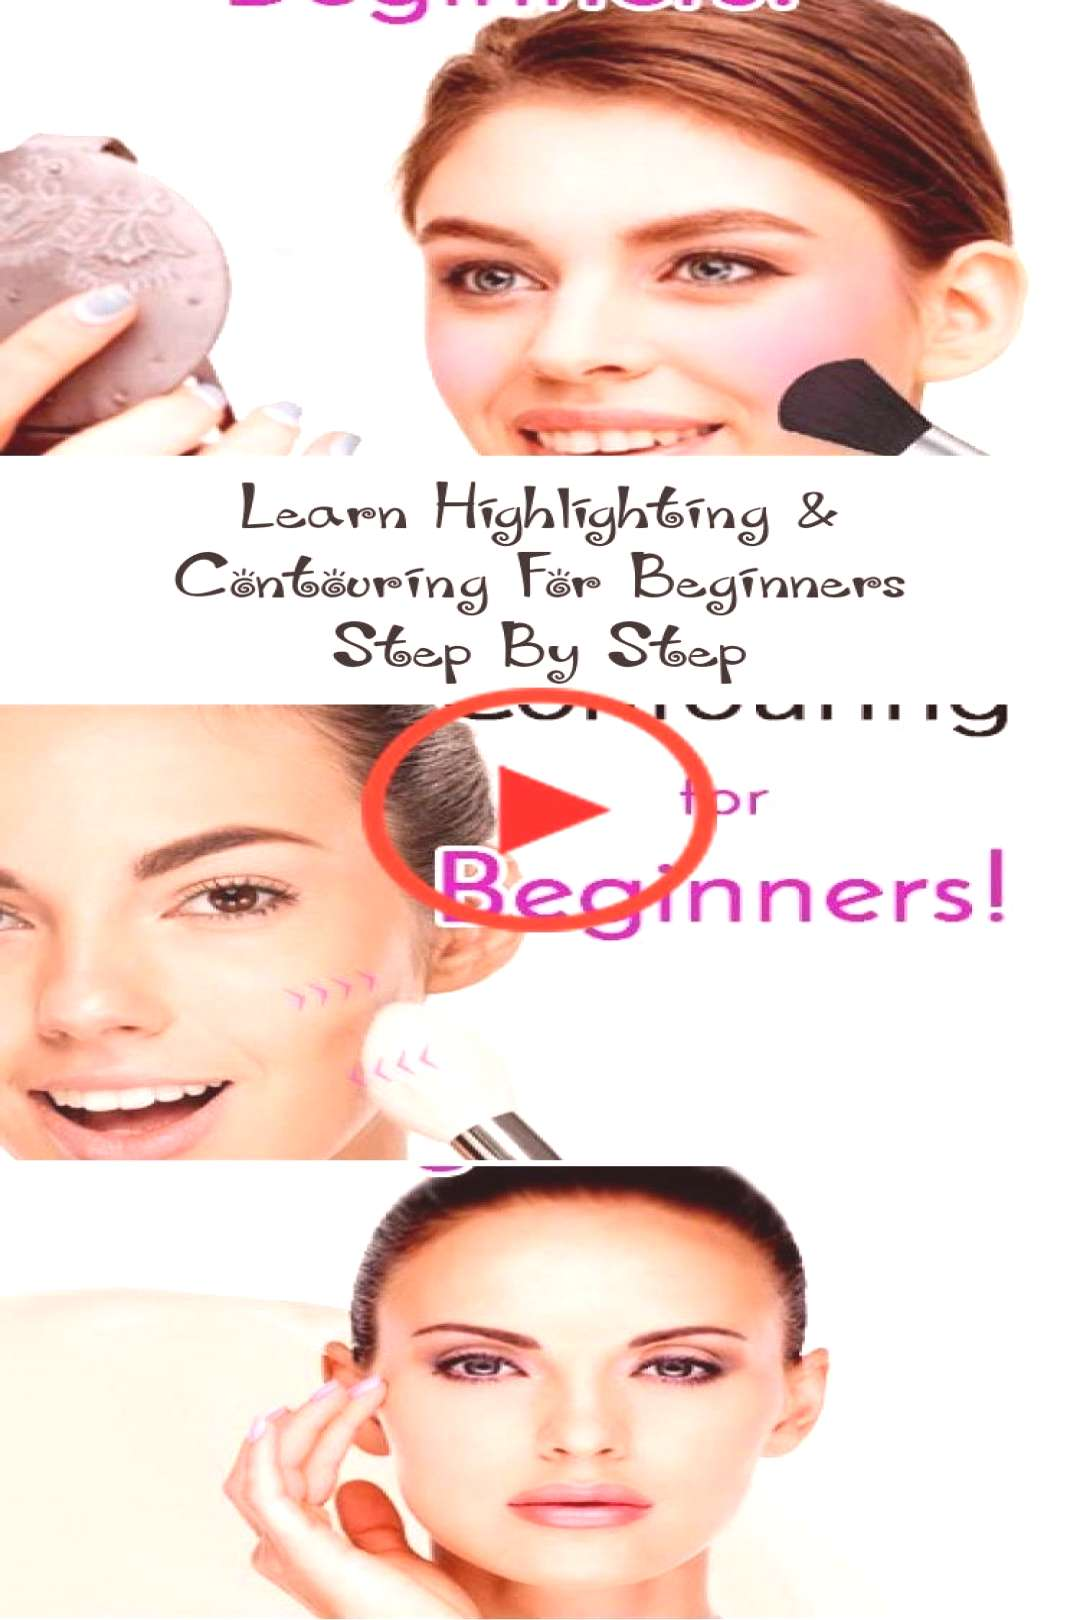 Learn Highlighting amp Contouring For Beginners Step By Step… - Make-Up - Highl... - Learn Learn